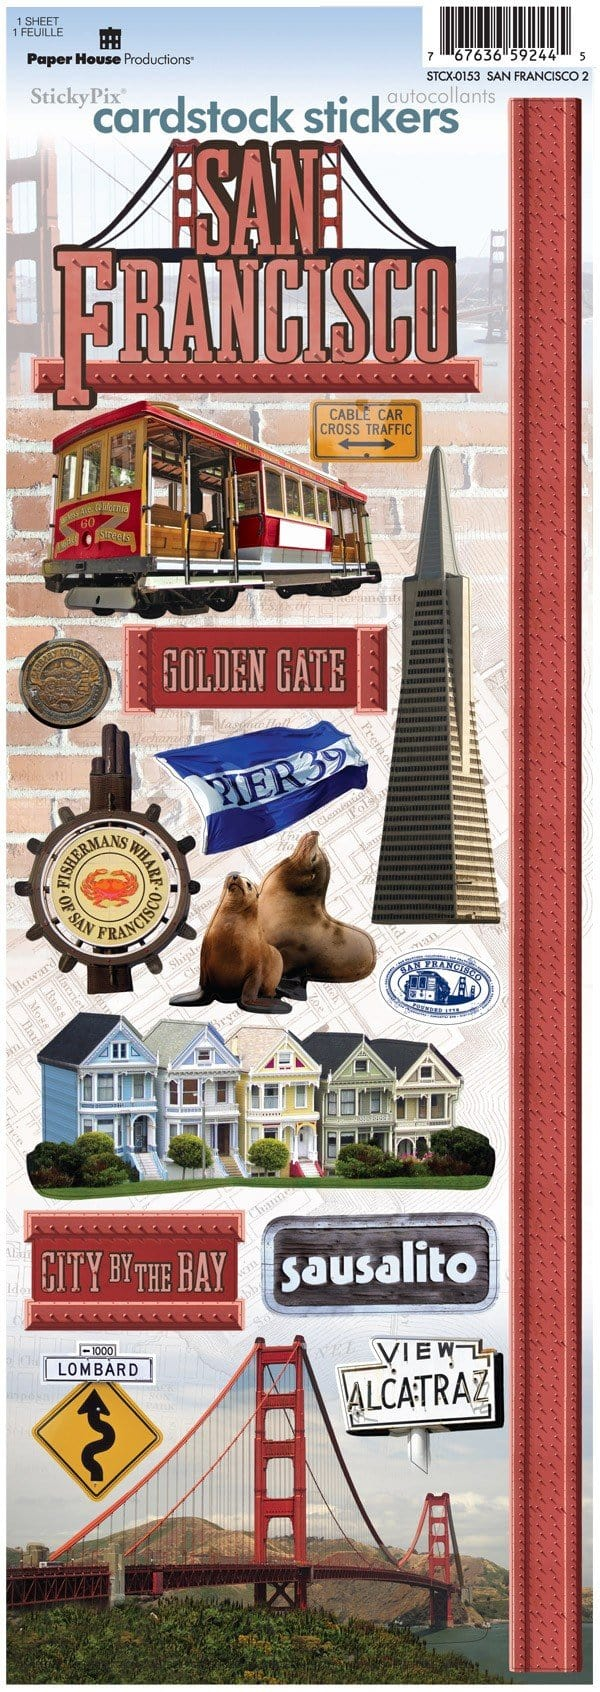 San Francisco Cardstock Stickers